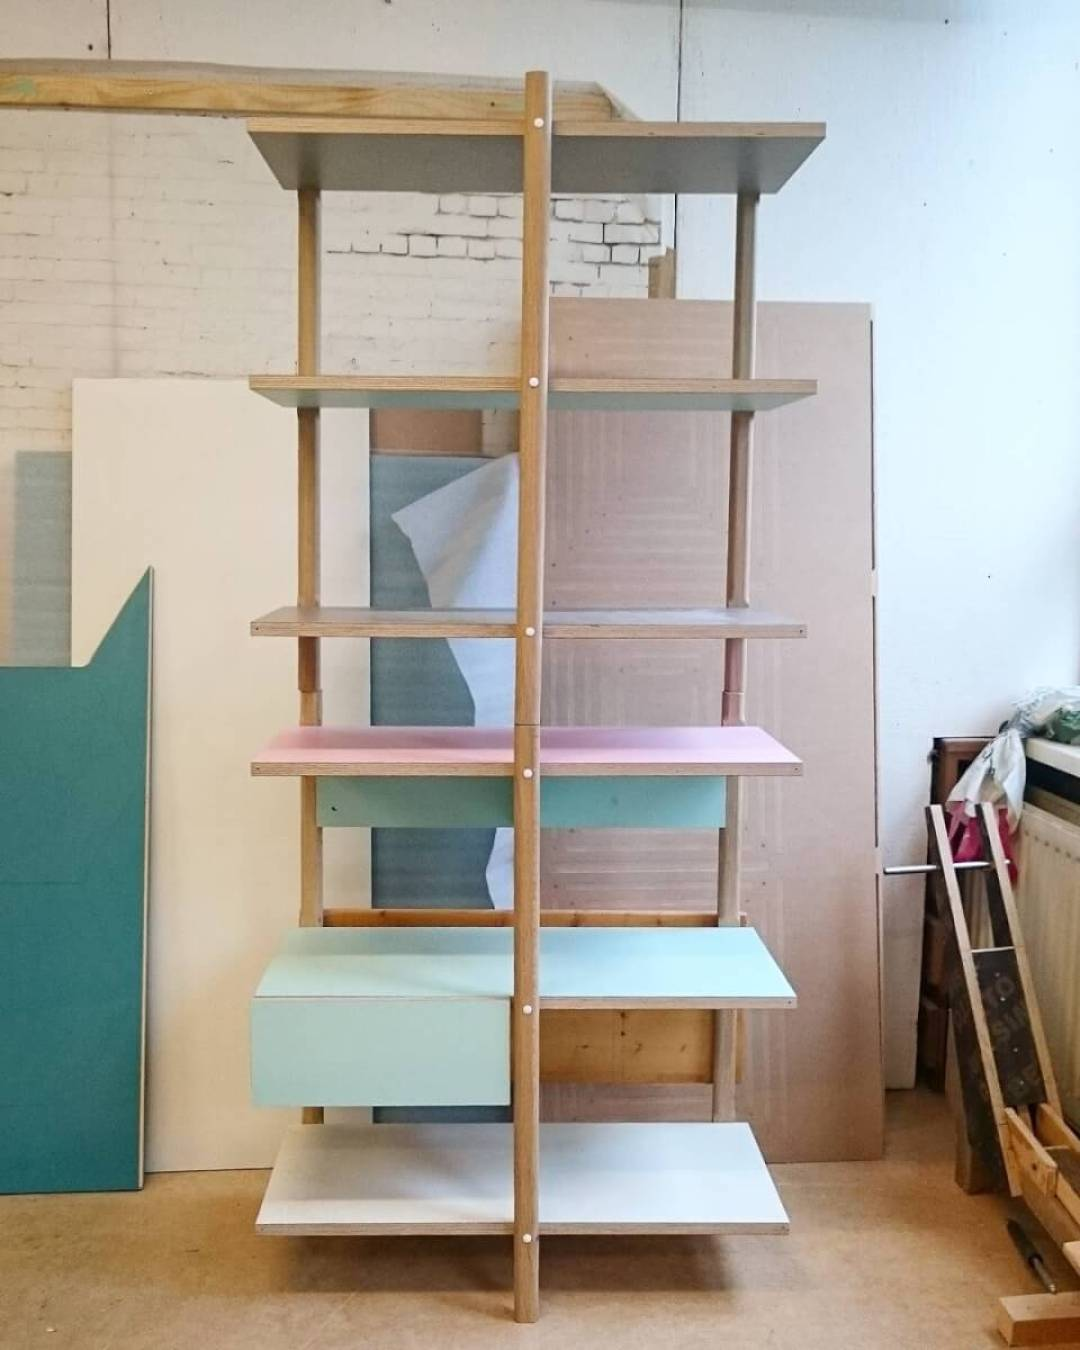 Improvements on the stackable #shelf are nearly #finished #modular #pastel #studiolorier